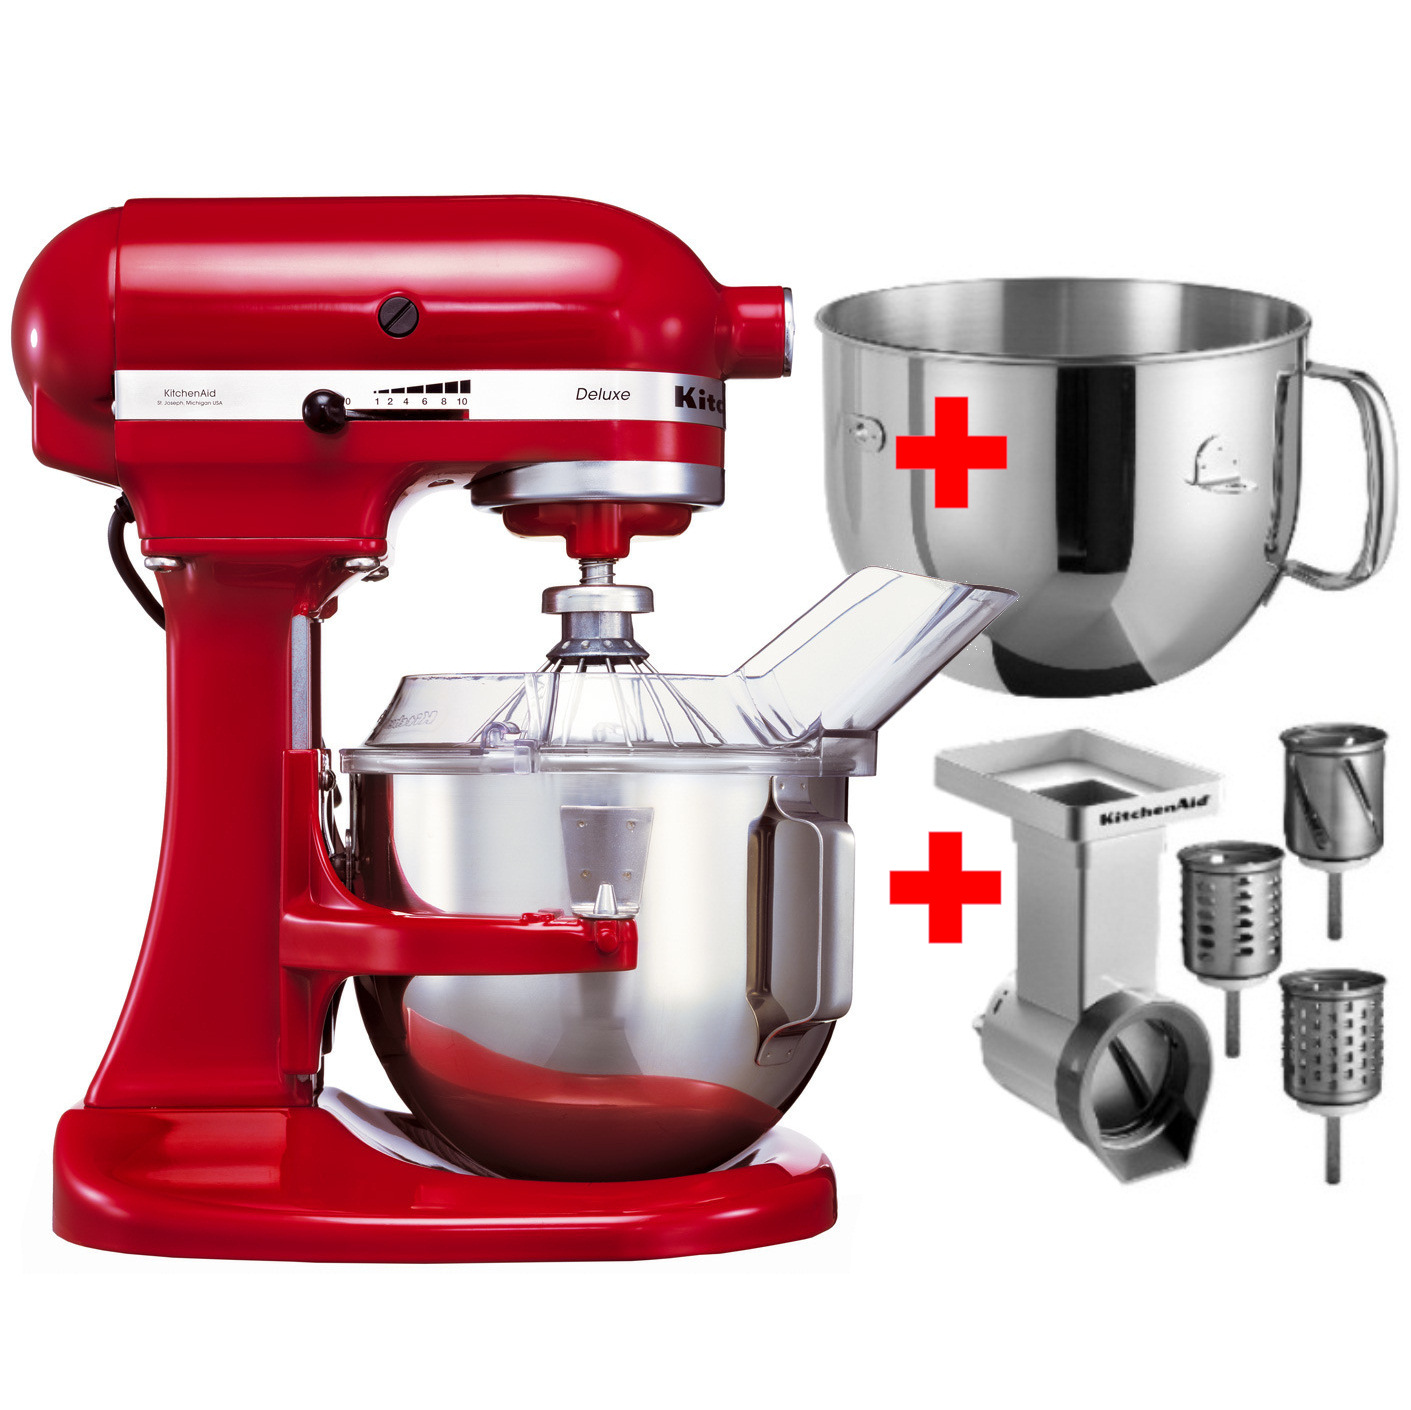 Kitchenaid Blender Food Processor